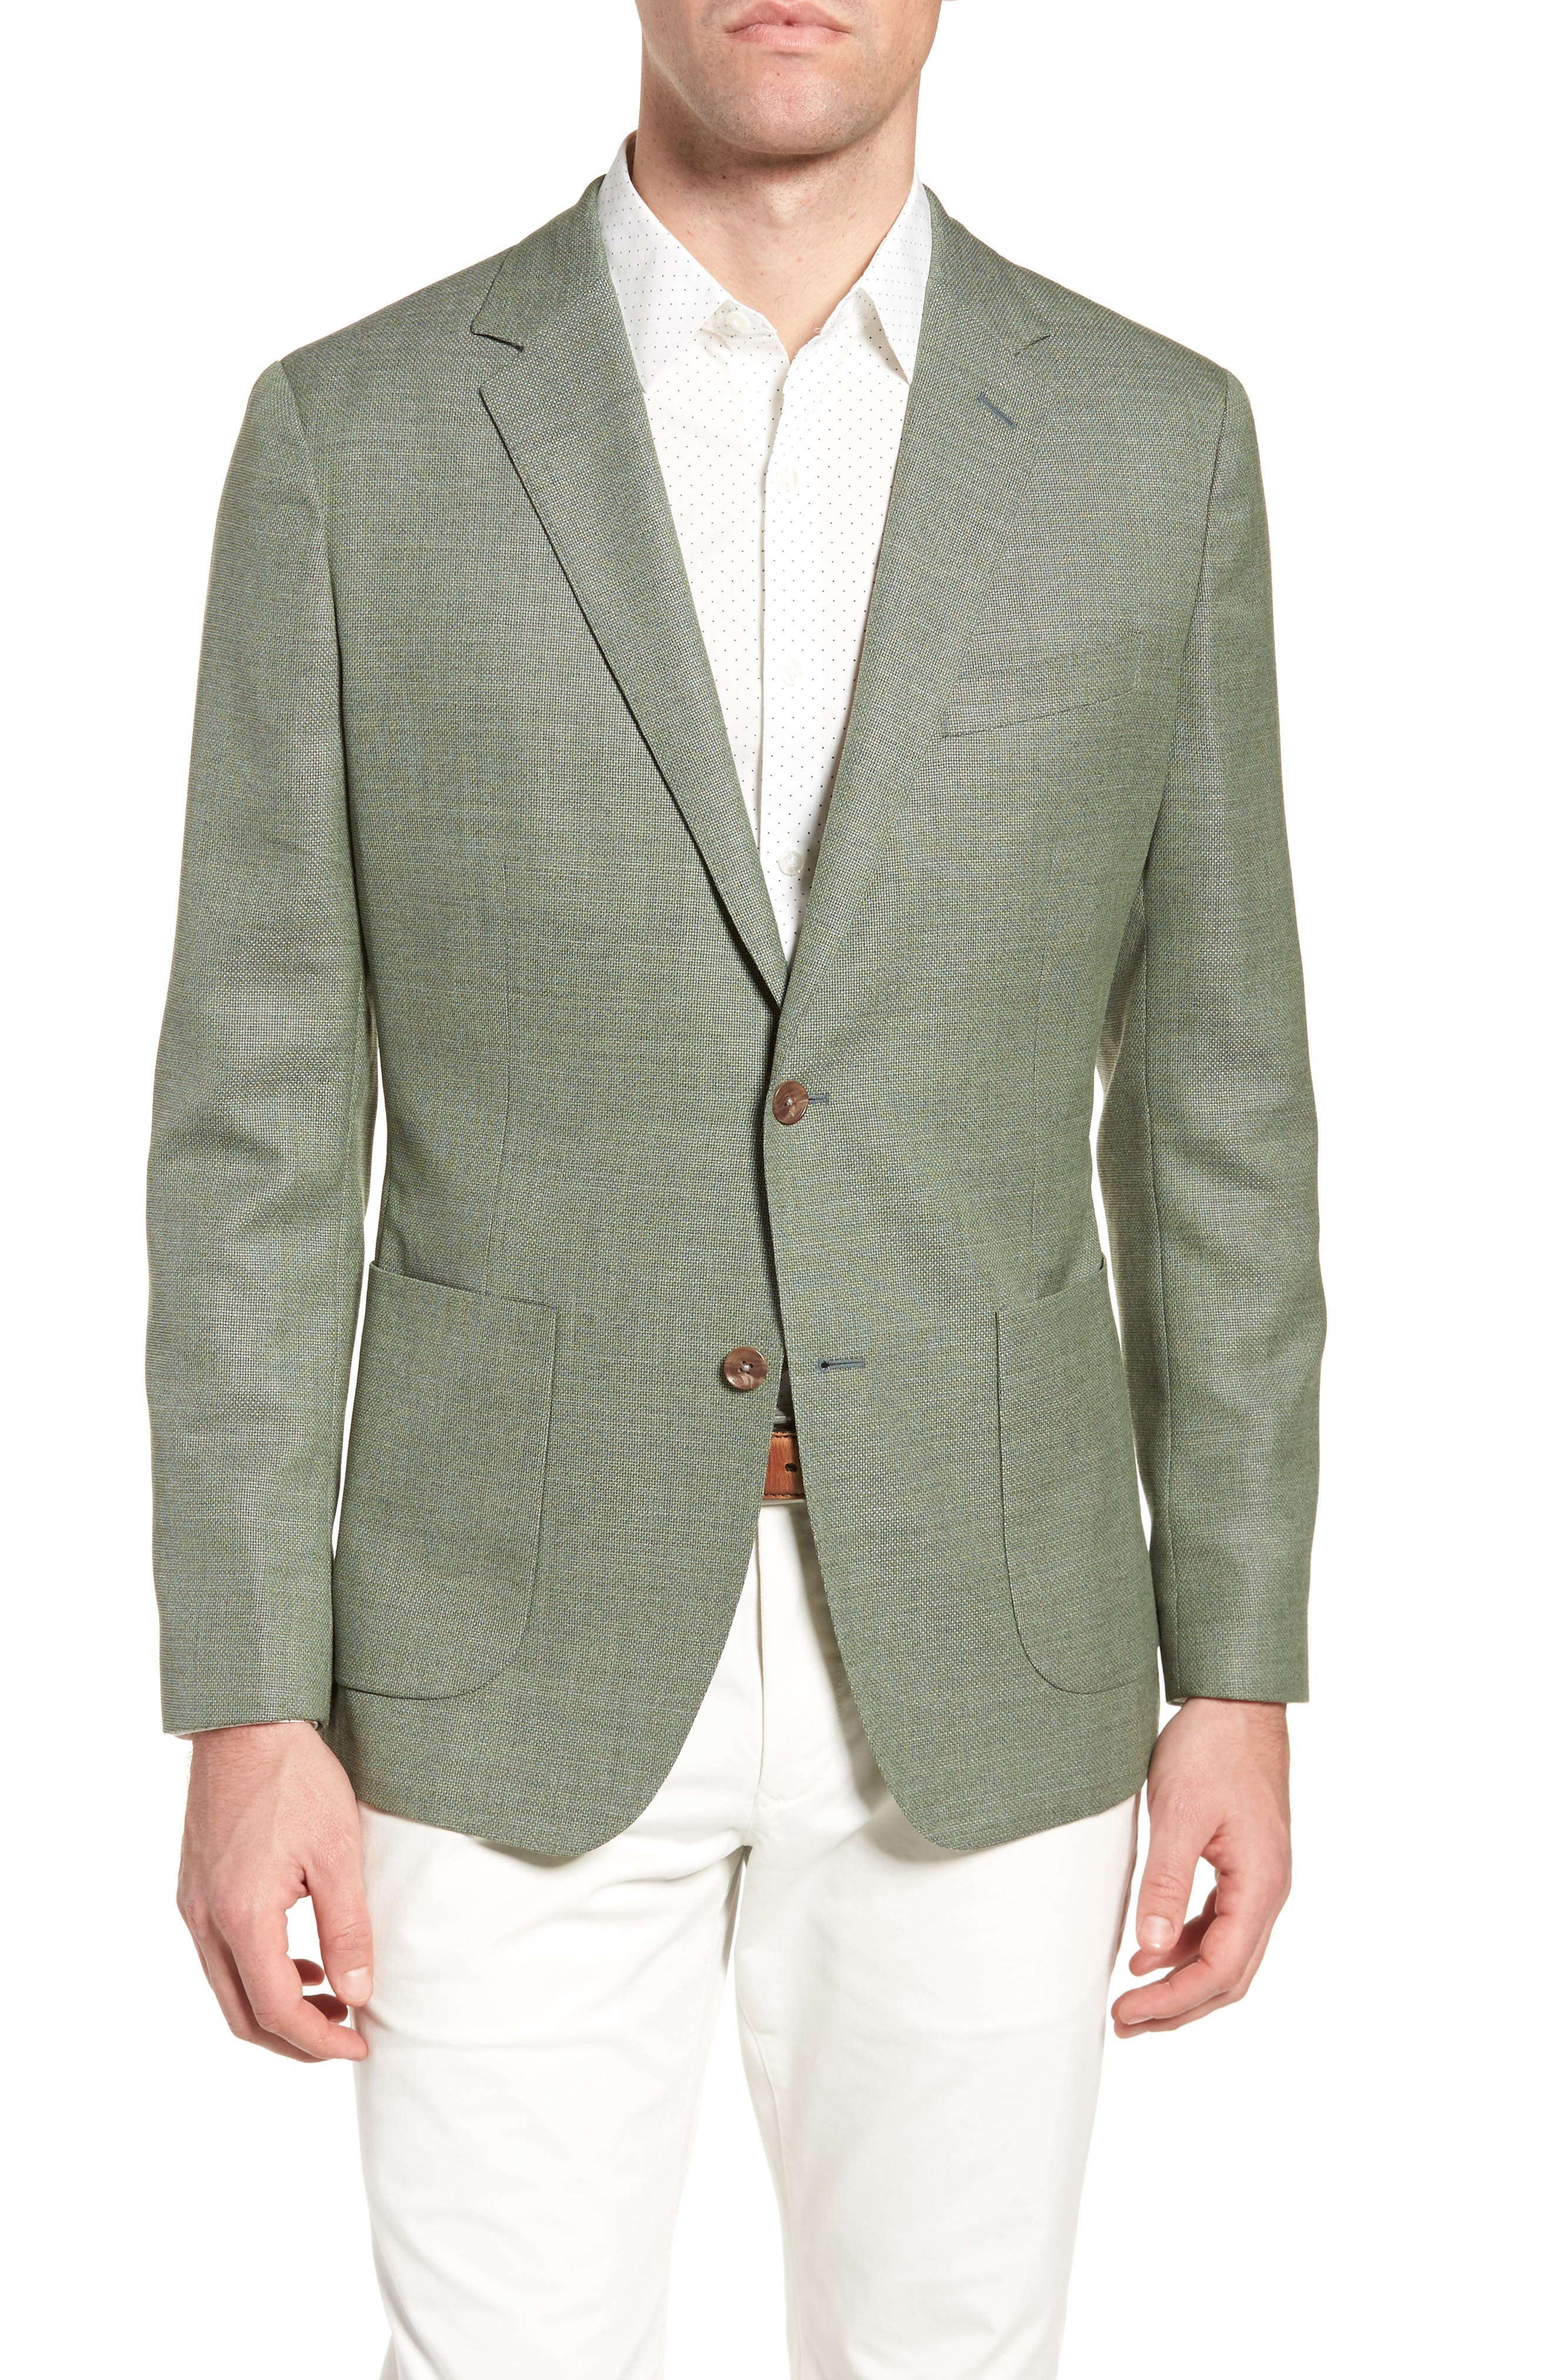 Alternate Image 1 Selected - Bonobos Trim Fit Wool Unconstructed Blazer